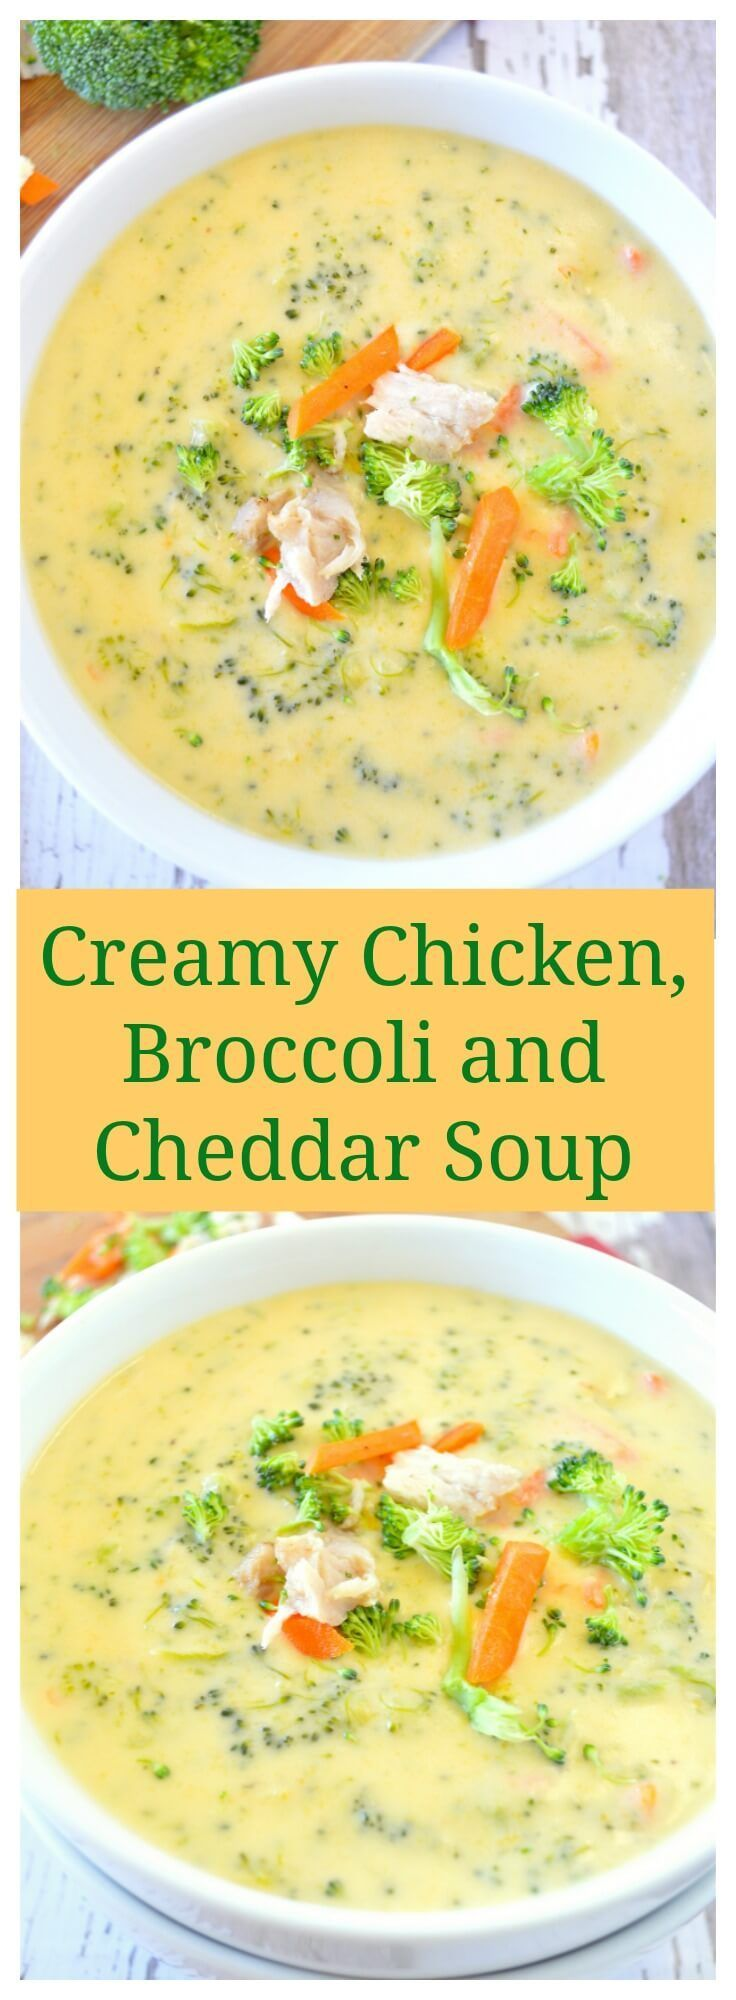 Make this Creamy Chicken, Broccoli, and Cheddar Soup! With fall around the corner, add this soup to your meal planning. This recipe will warm you up.